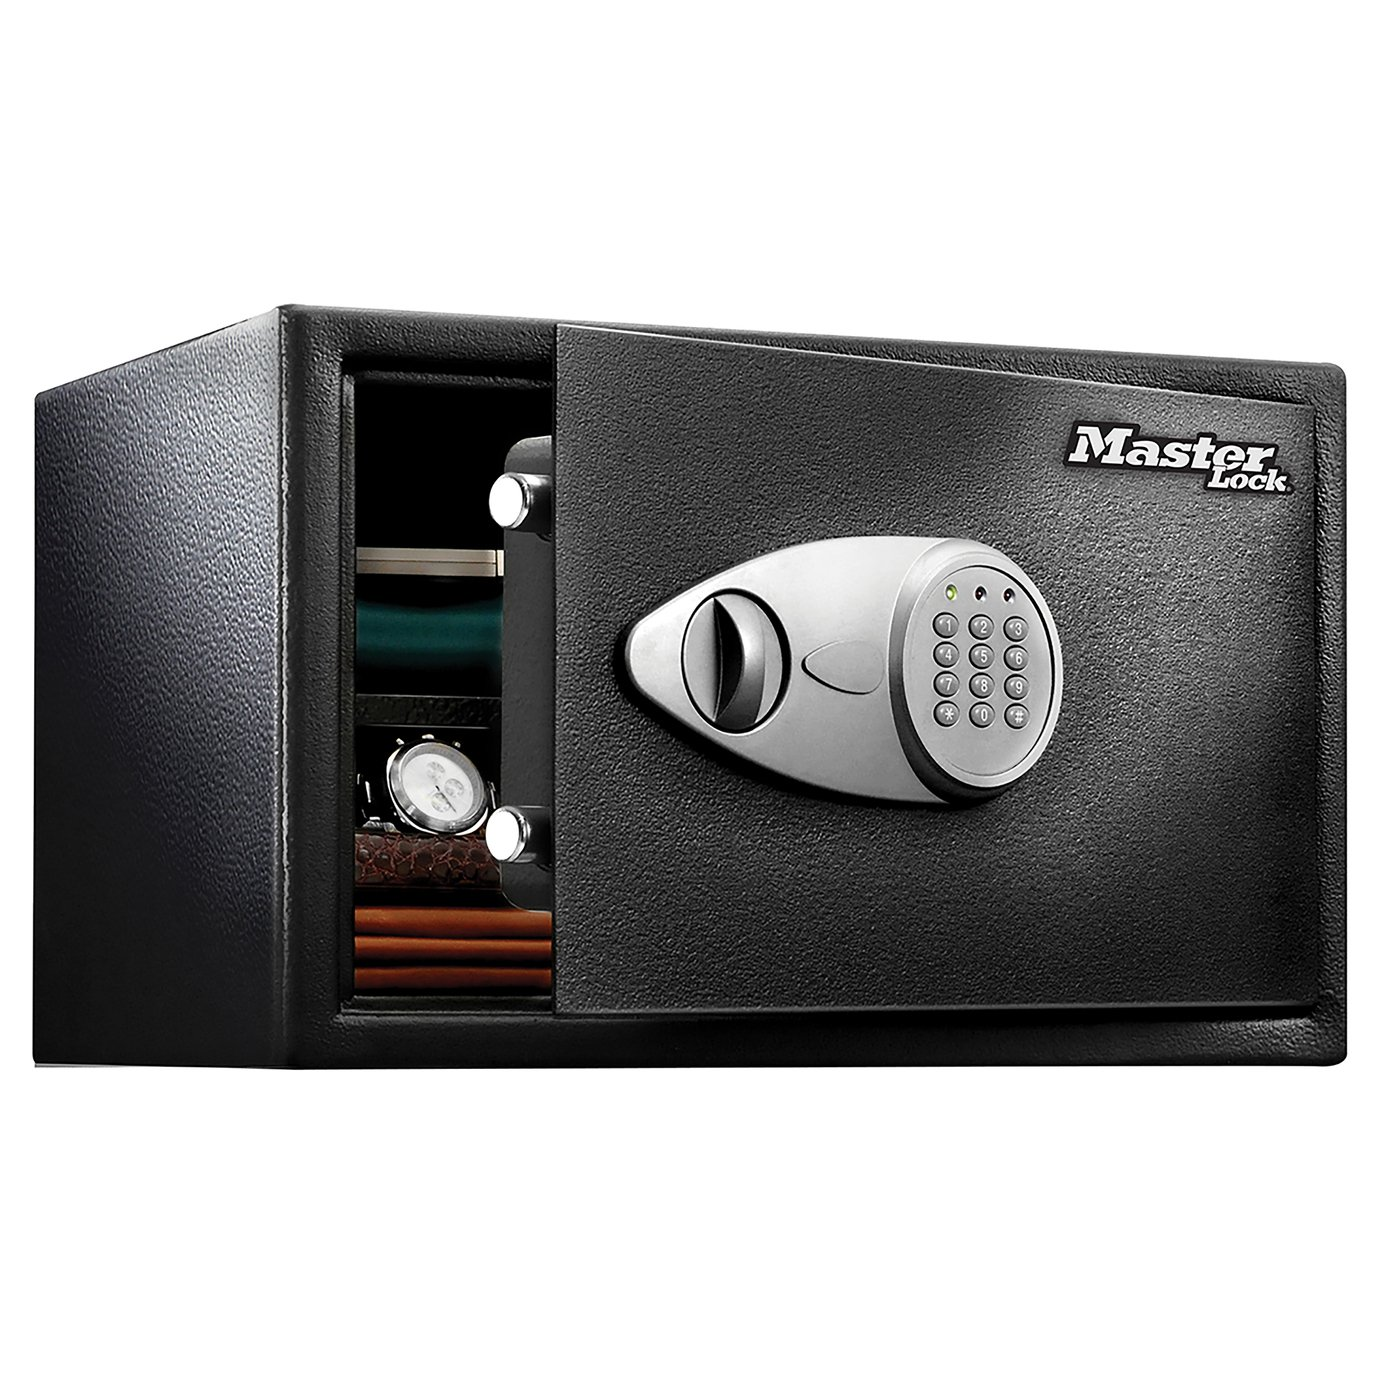 Master Lock 43cm Large Digital Safe